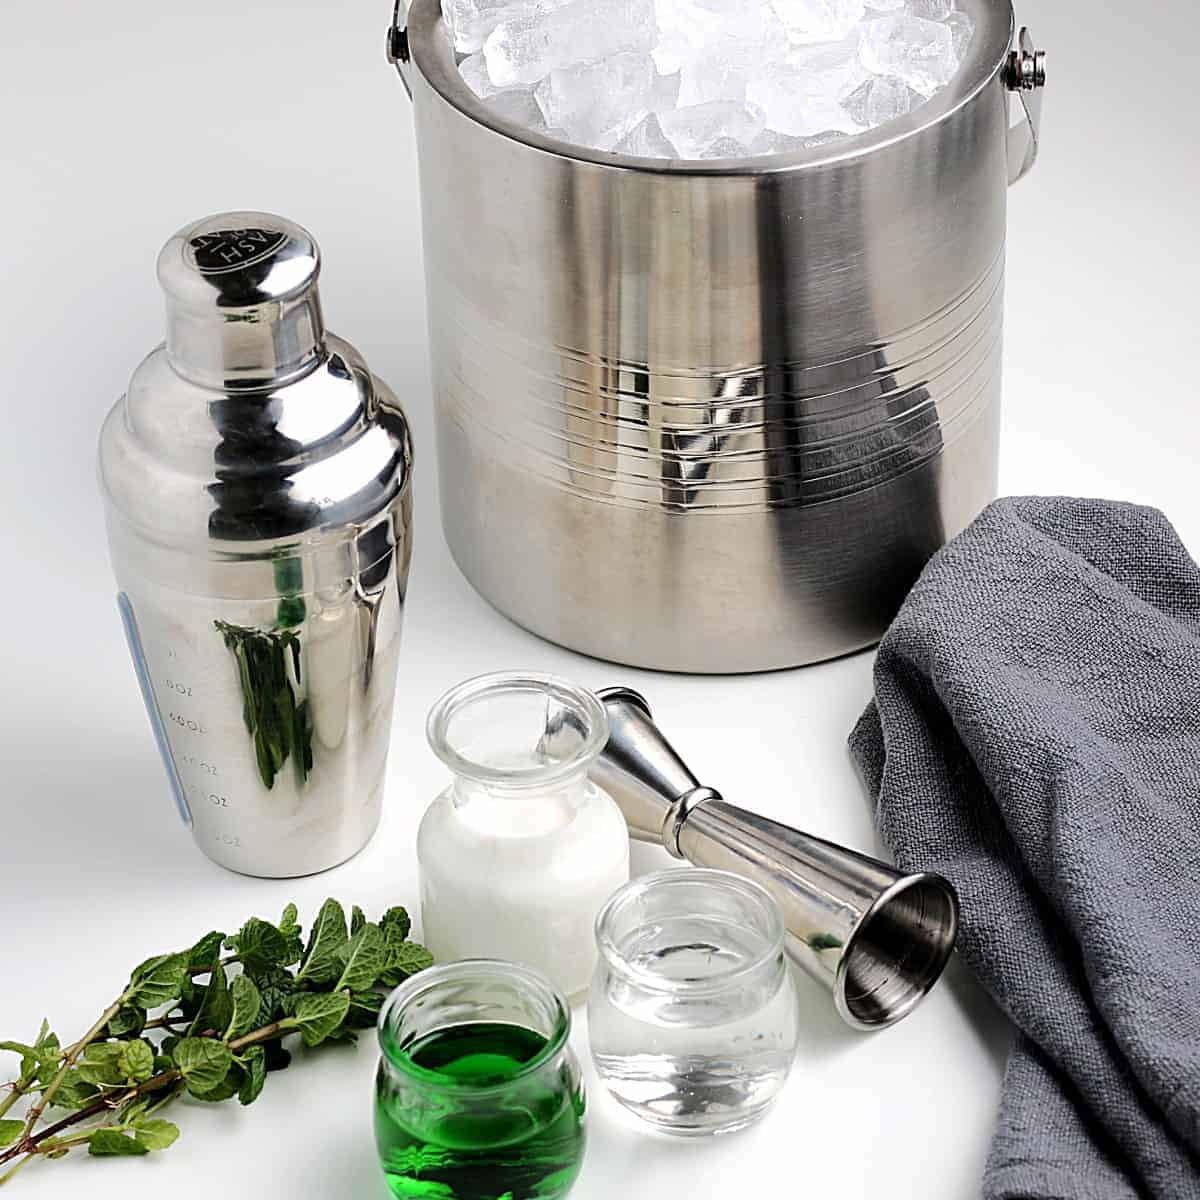 All of the ingredients to make a green Grasshopper Drink.